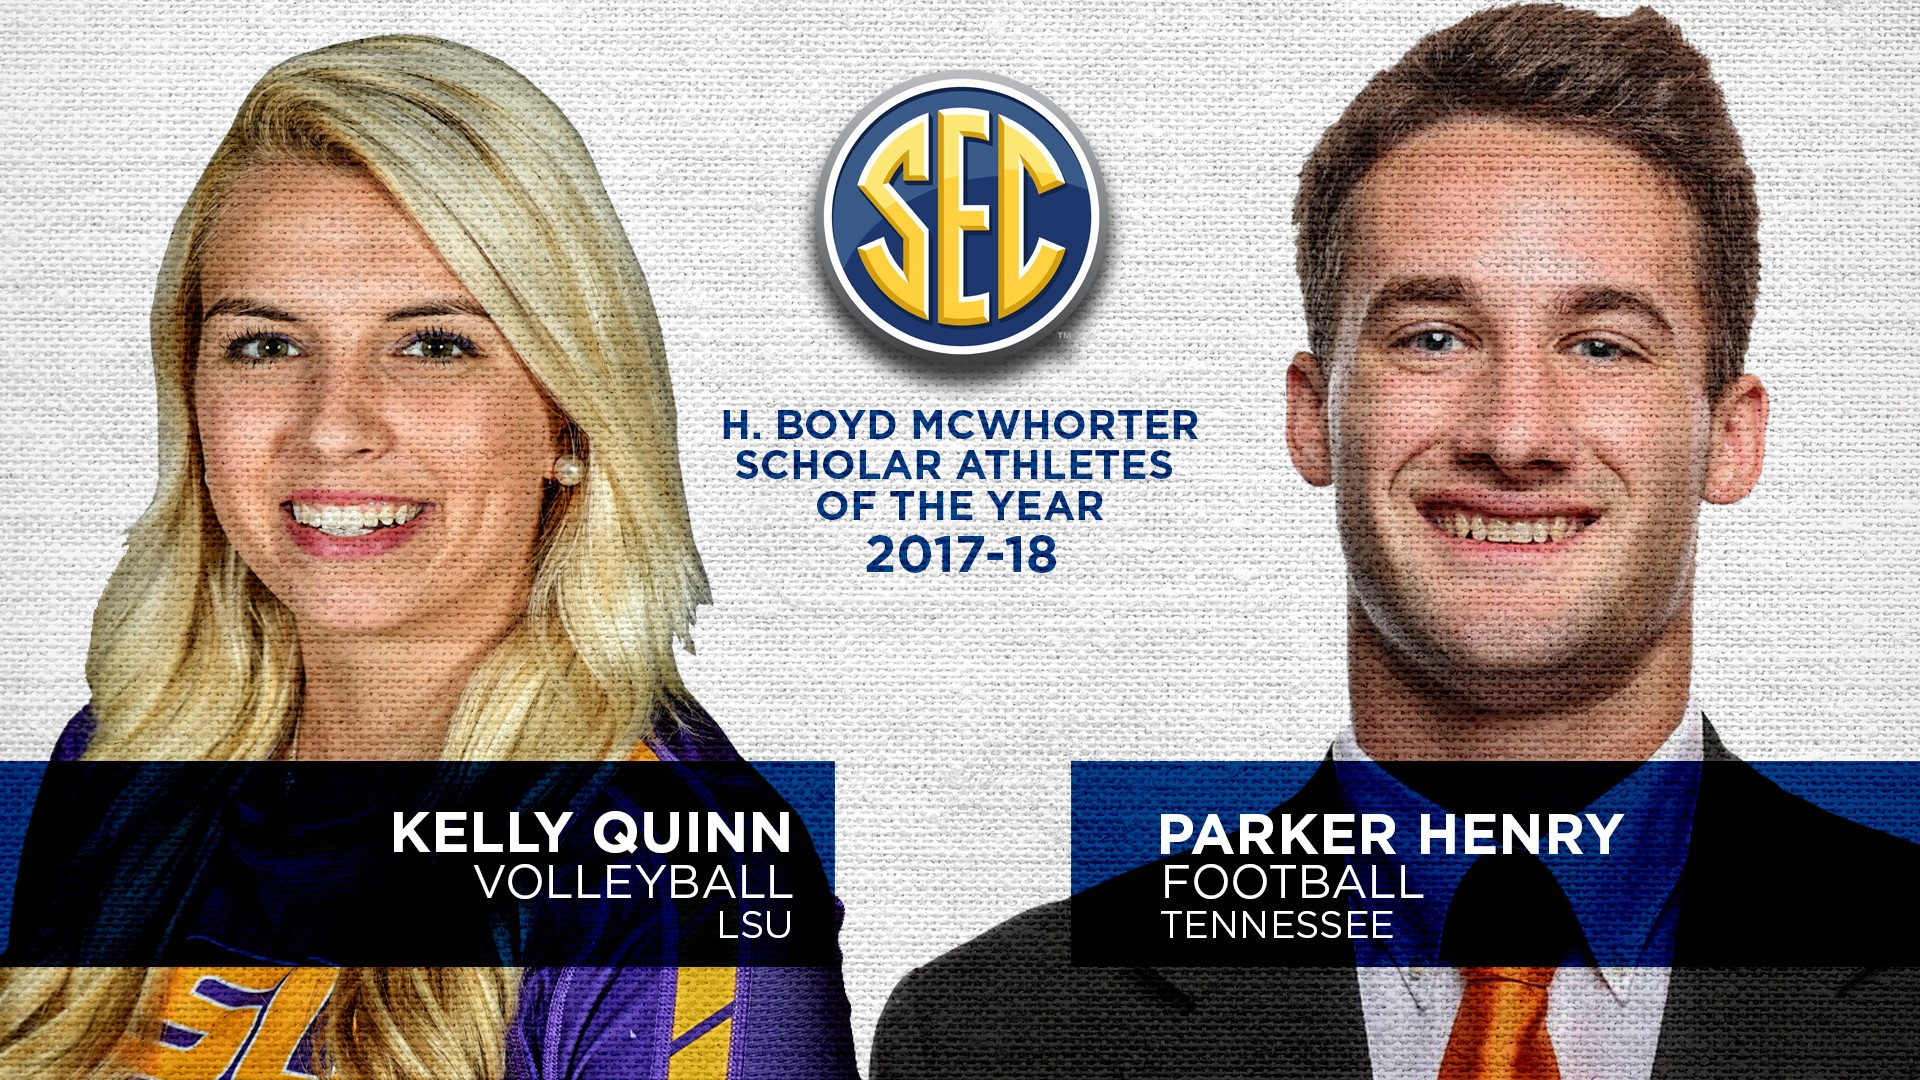 Tennessee and LSU student-athletes named recipients of SEC H. Boyd McWhorter Award for their accomplishments in athletics, academics and community service.